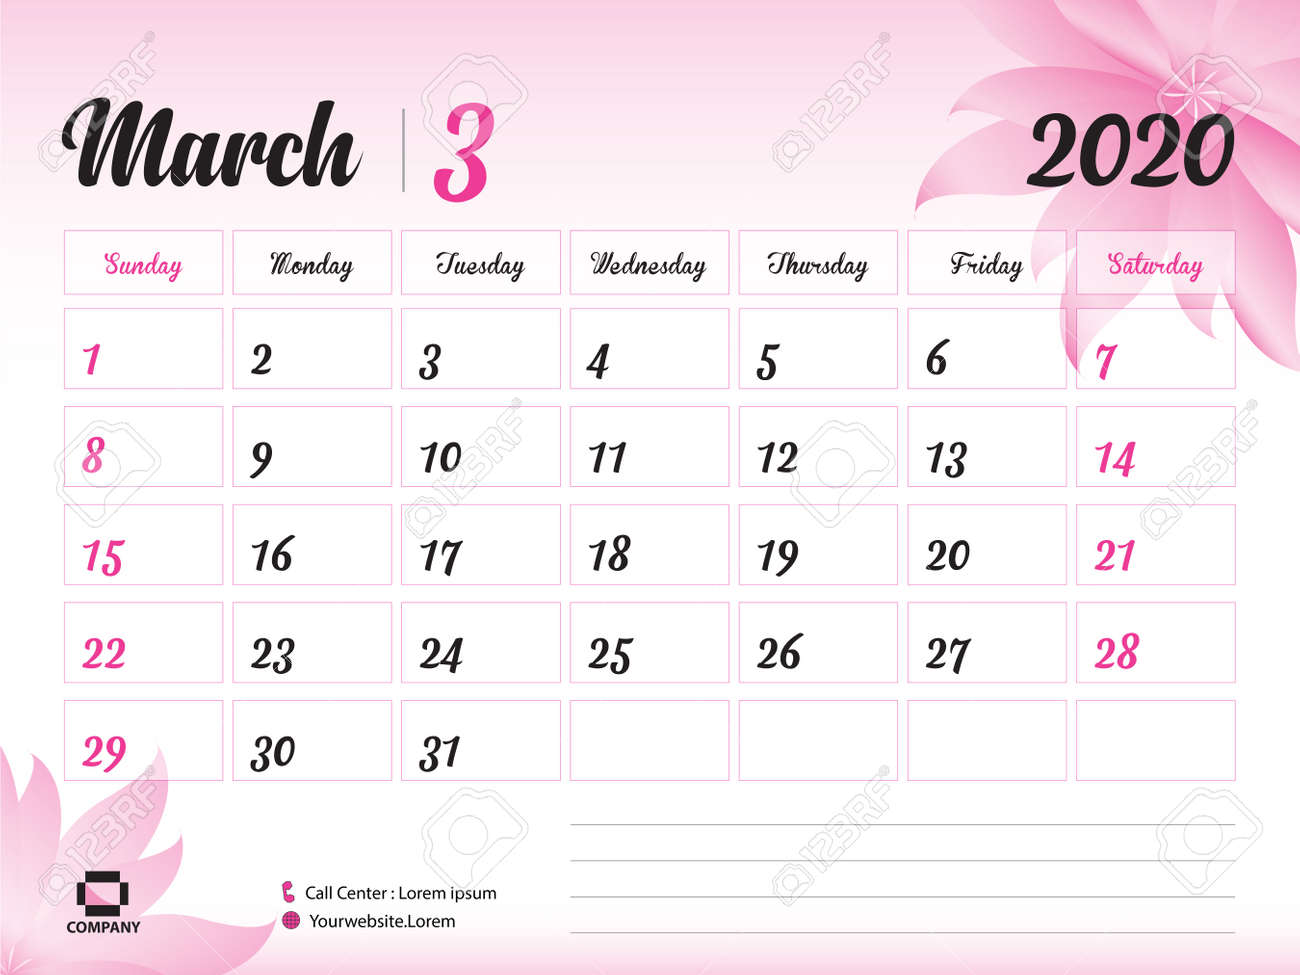 March Printable Calendar 2020.March 2020 Year Template Calendar 2020 Desk Calendar Design